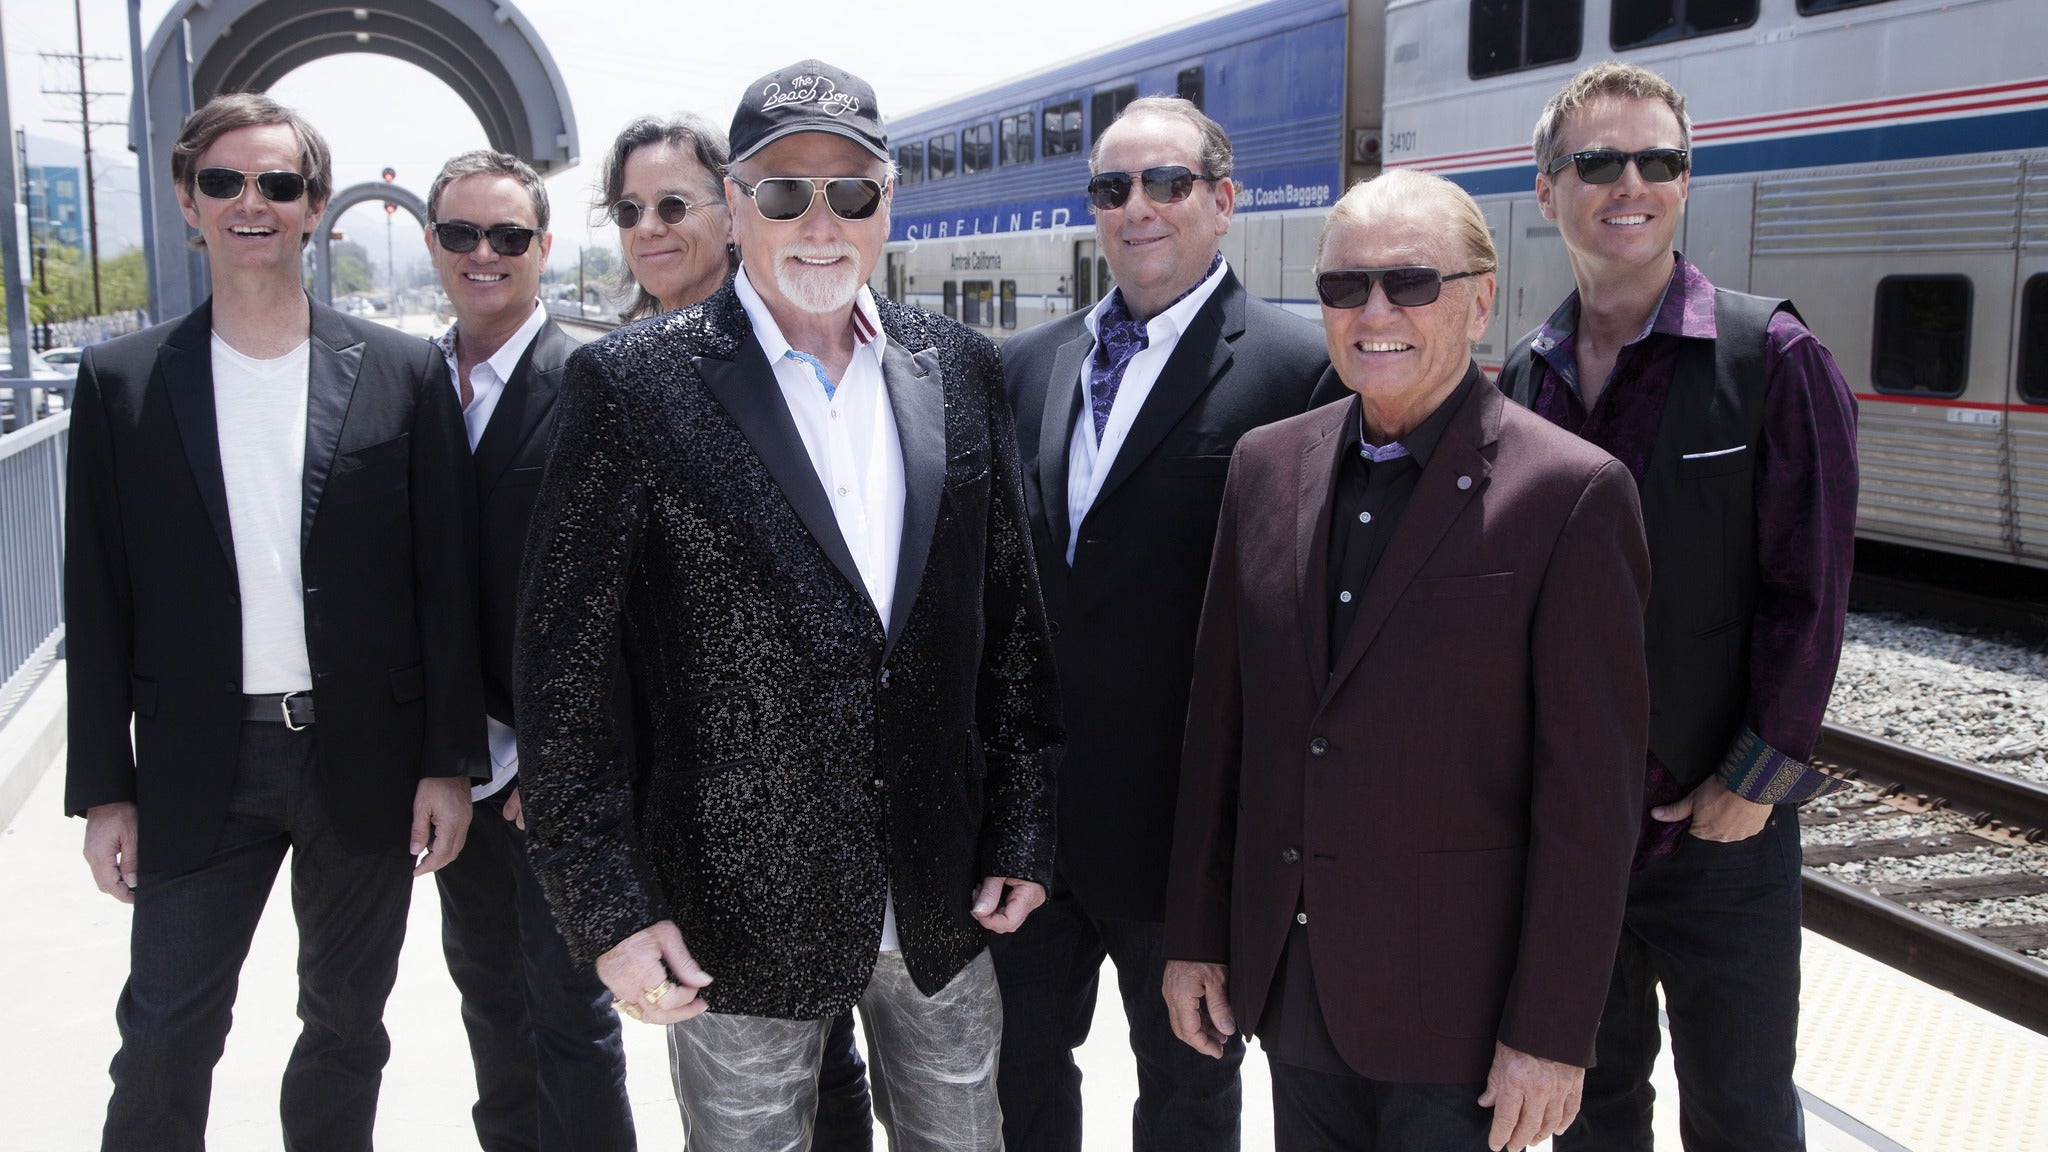 image for event The Beach Boys and Beach Boys